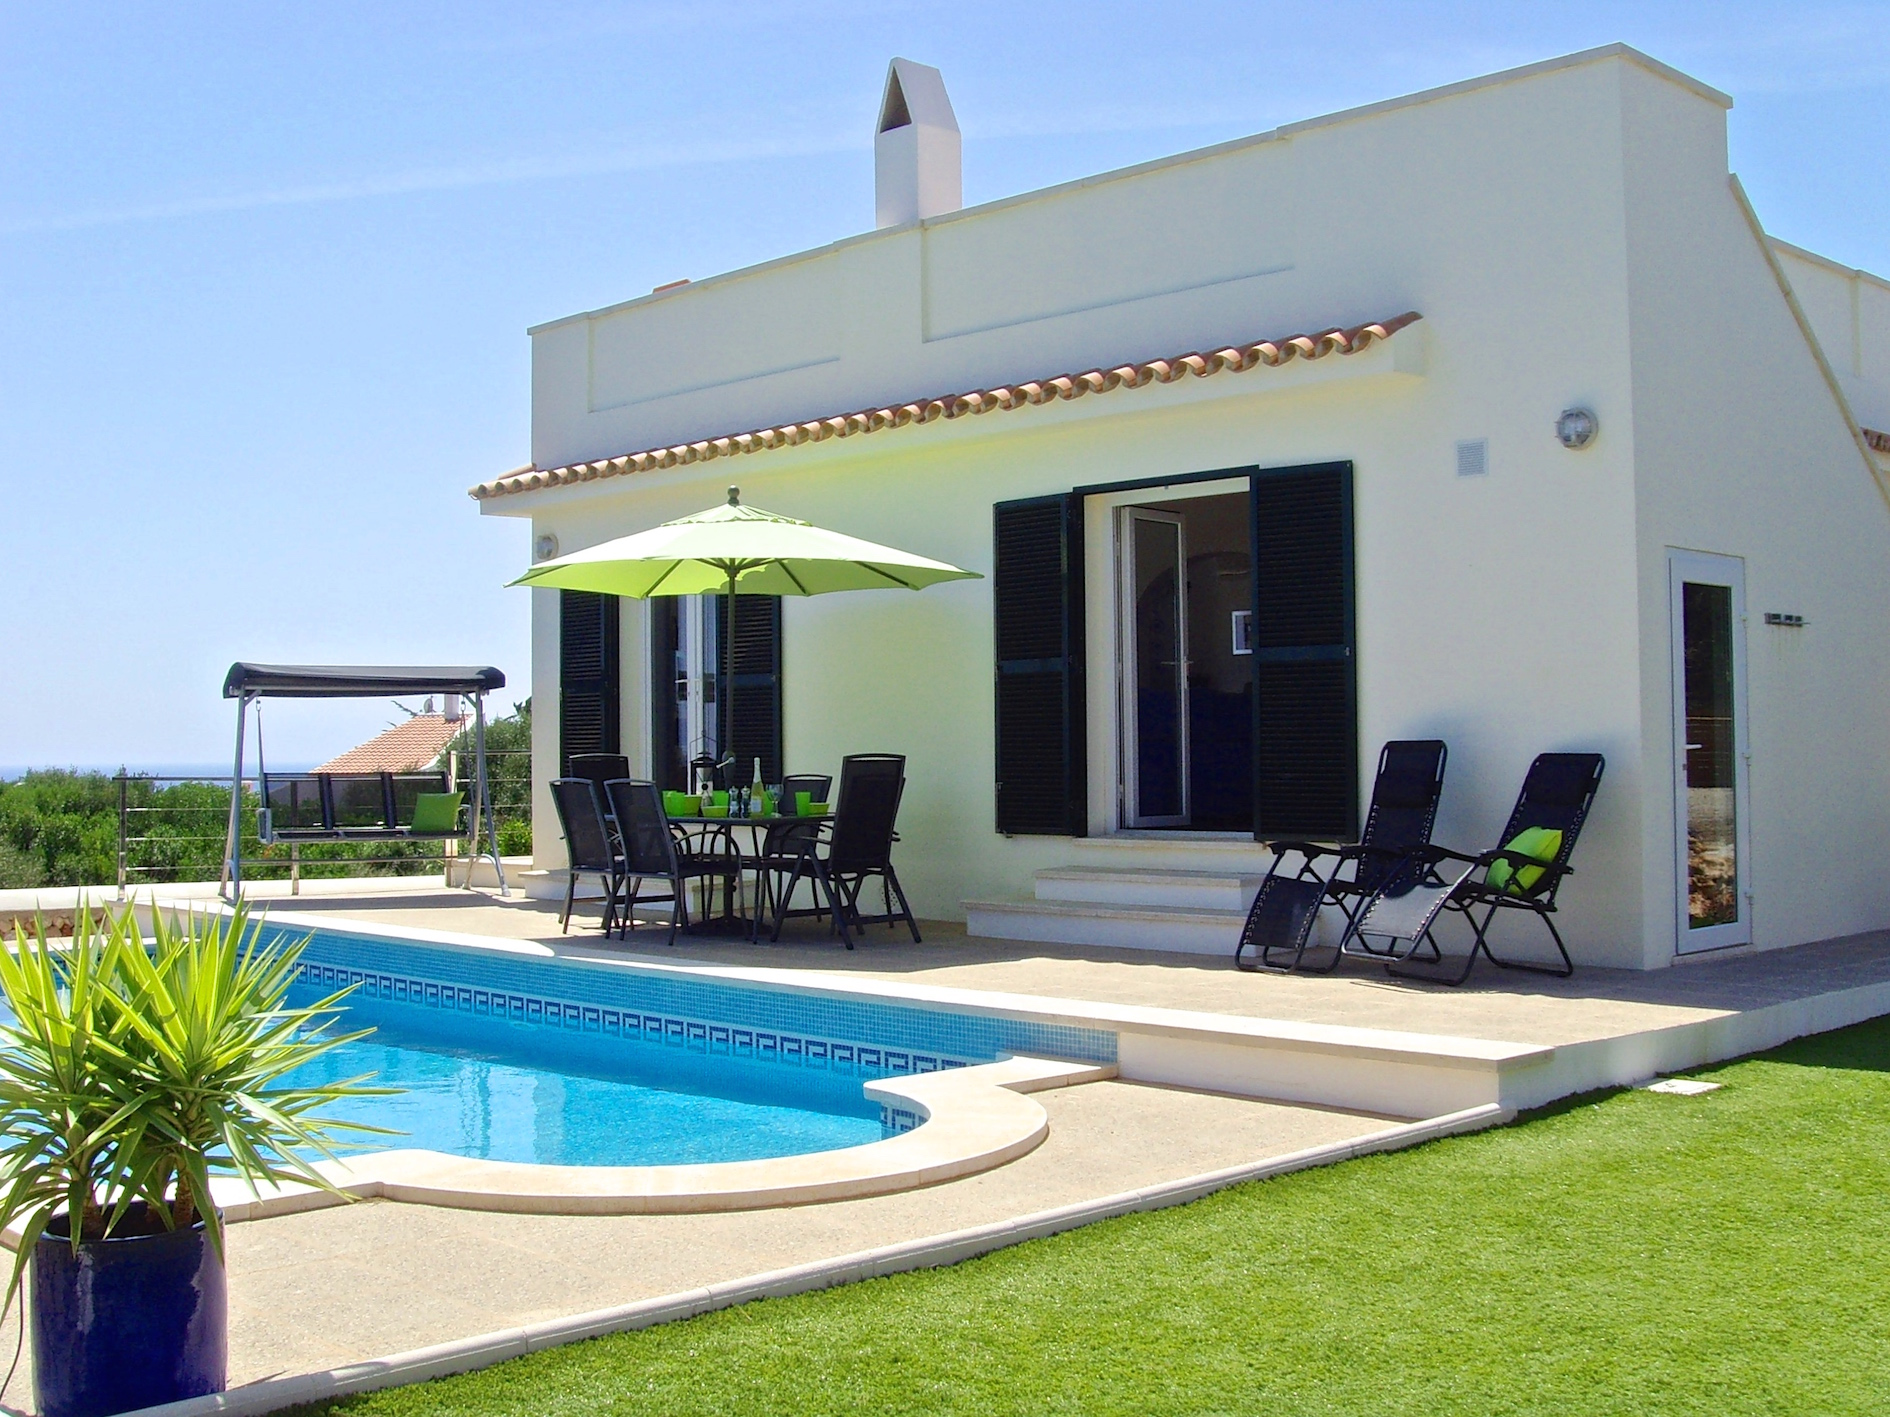 Casas bonitas menorca 5 - Some basic tips to keep your pool at it's best.